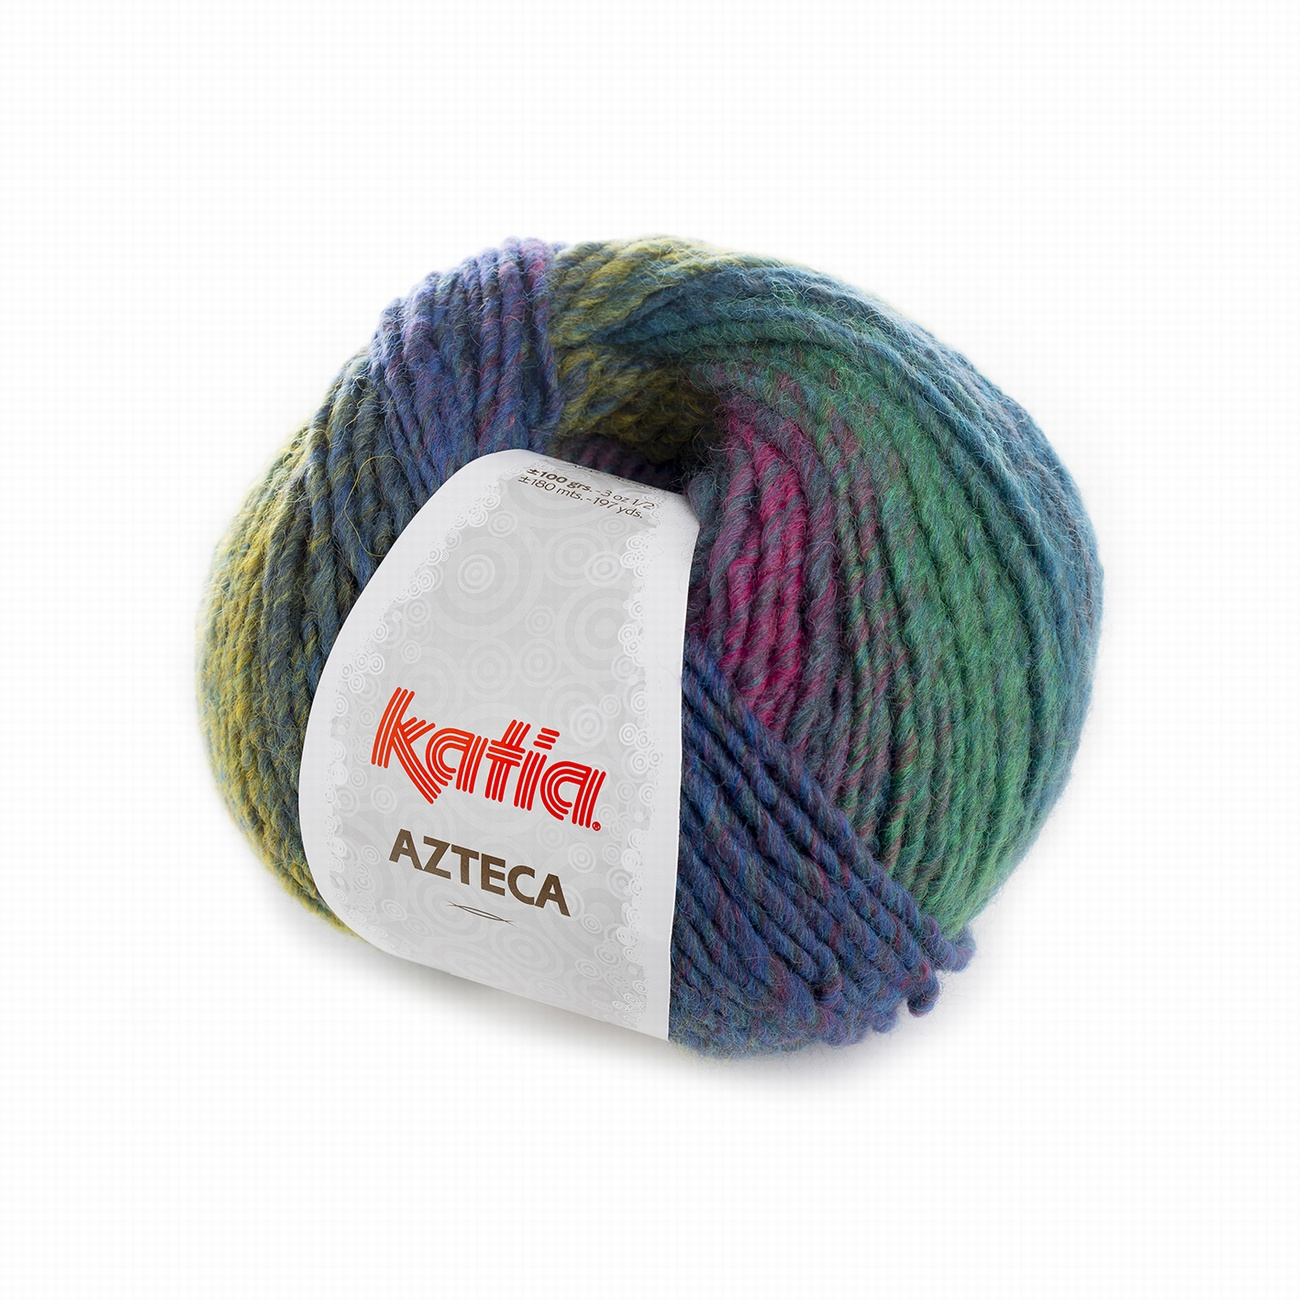 Katia Azteca Yarn 7864 Blue-Green-Rose